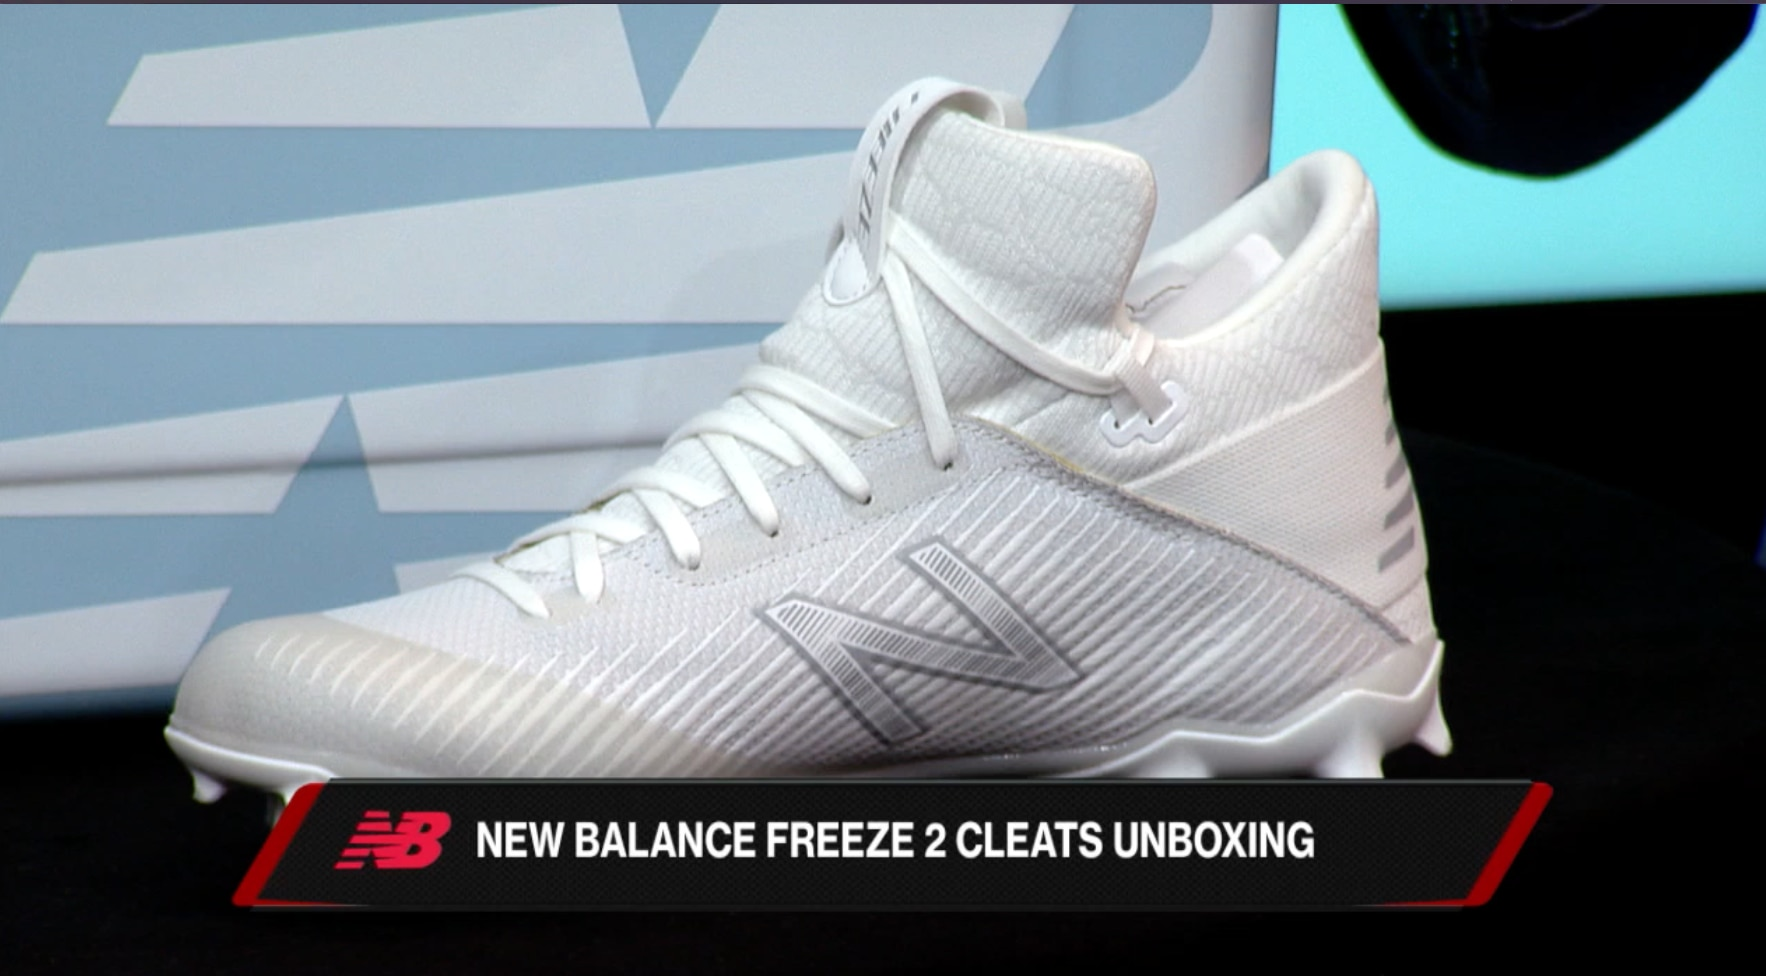 a478ffb1c7c Unboxing the New Balance Freeze 2.0 Cleats